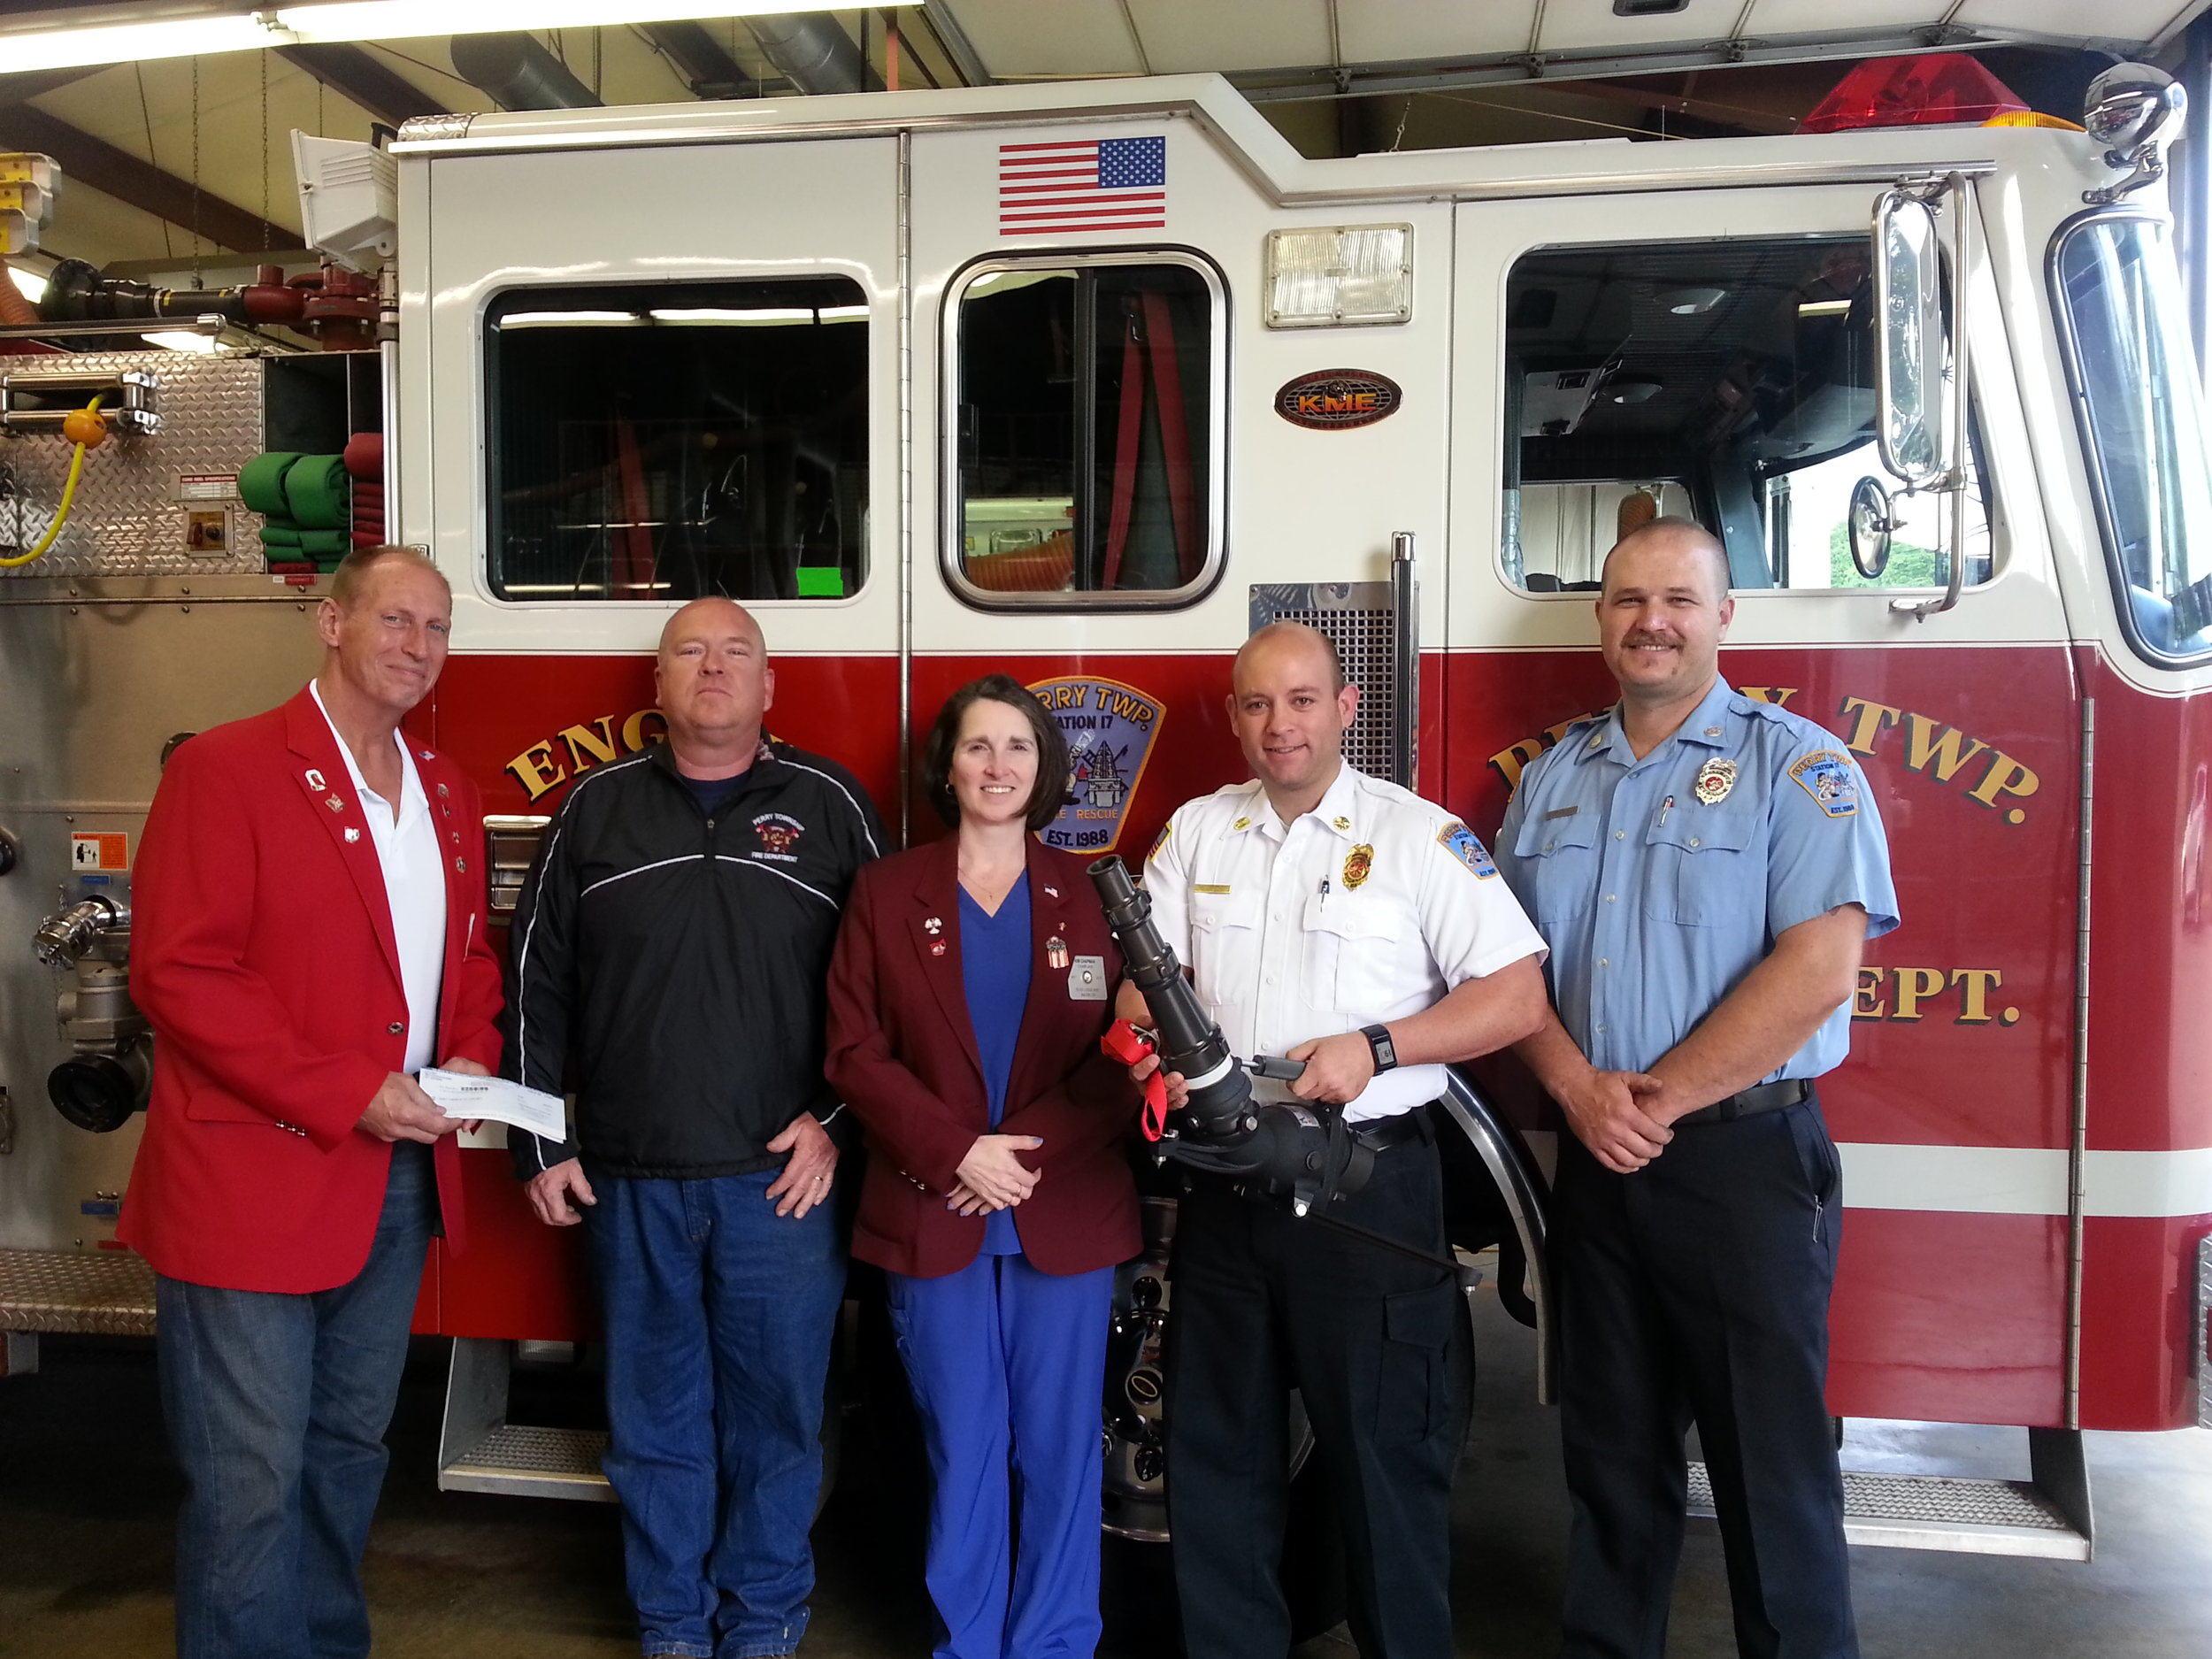 Pictured presenting the check is Wayne Gorby, Exalted Ruler to Perry Township Volunteer Fire Department's Chief Bruce Whitaker; Kim Chapman,  CSG Chairman; Asst. Chief Brandon Smith who's holding the Quick Attach Monitor and Fireman Brandon Planisky.